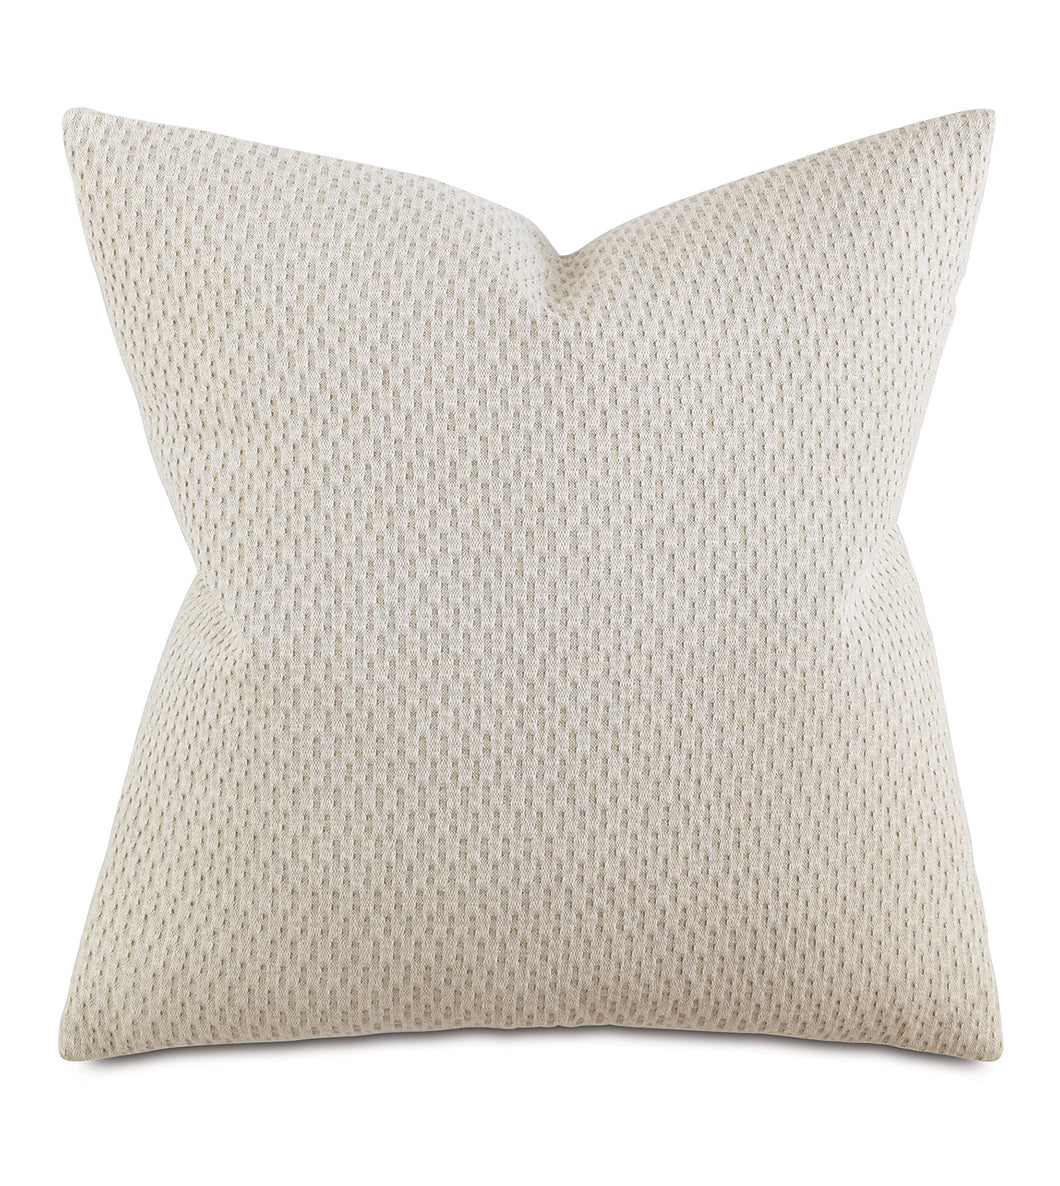 Neutral Contemporary Rustic Textured Decorative Pillow 24